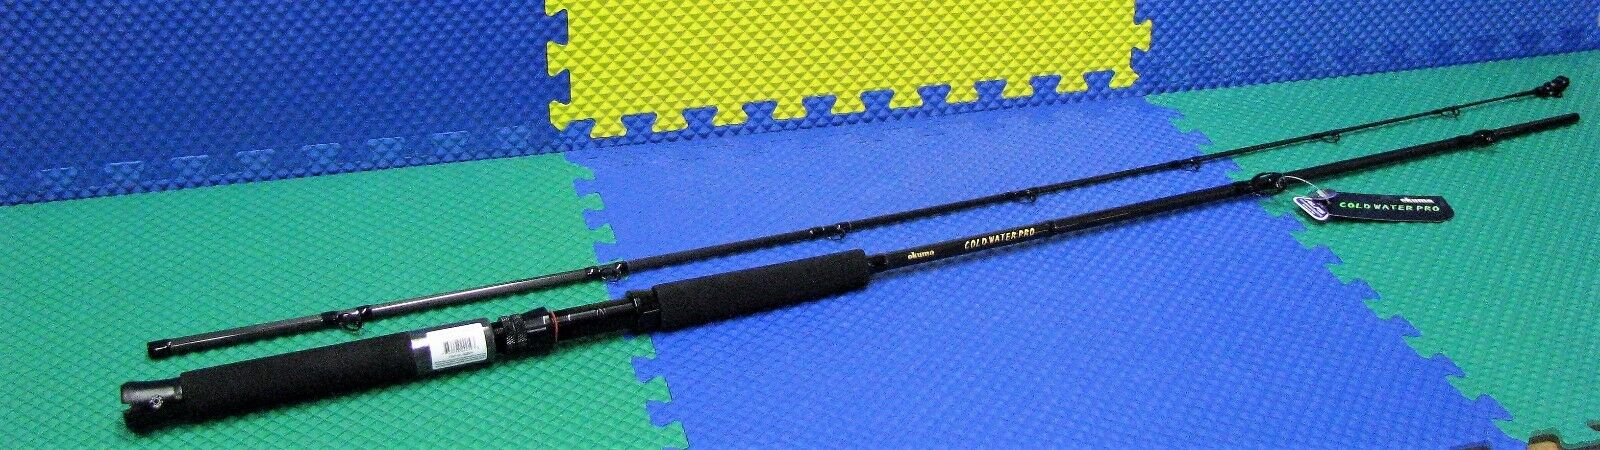 Okuma Coldwater Pro Trolling  Rod 9' 0  2PC MH Power CWP-WL-902MH  supply quality product